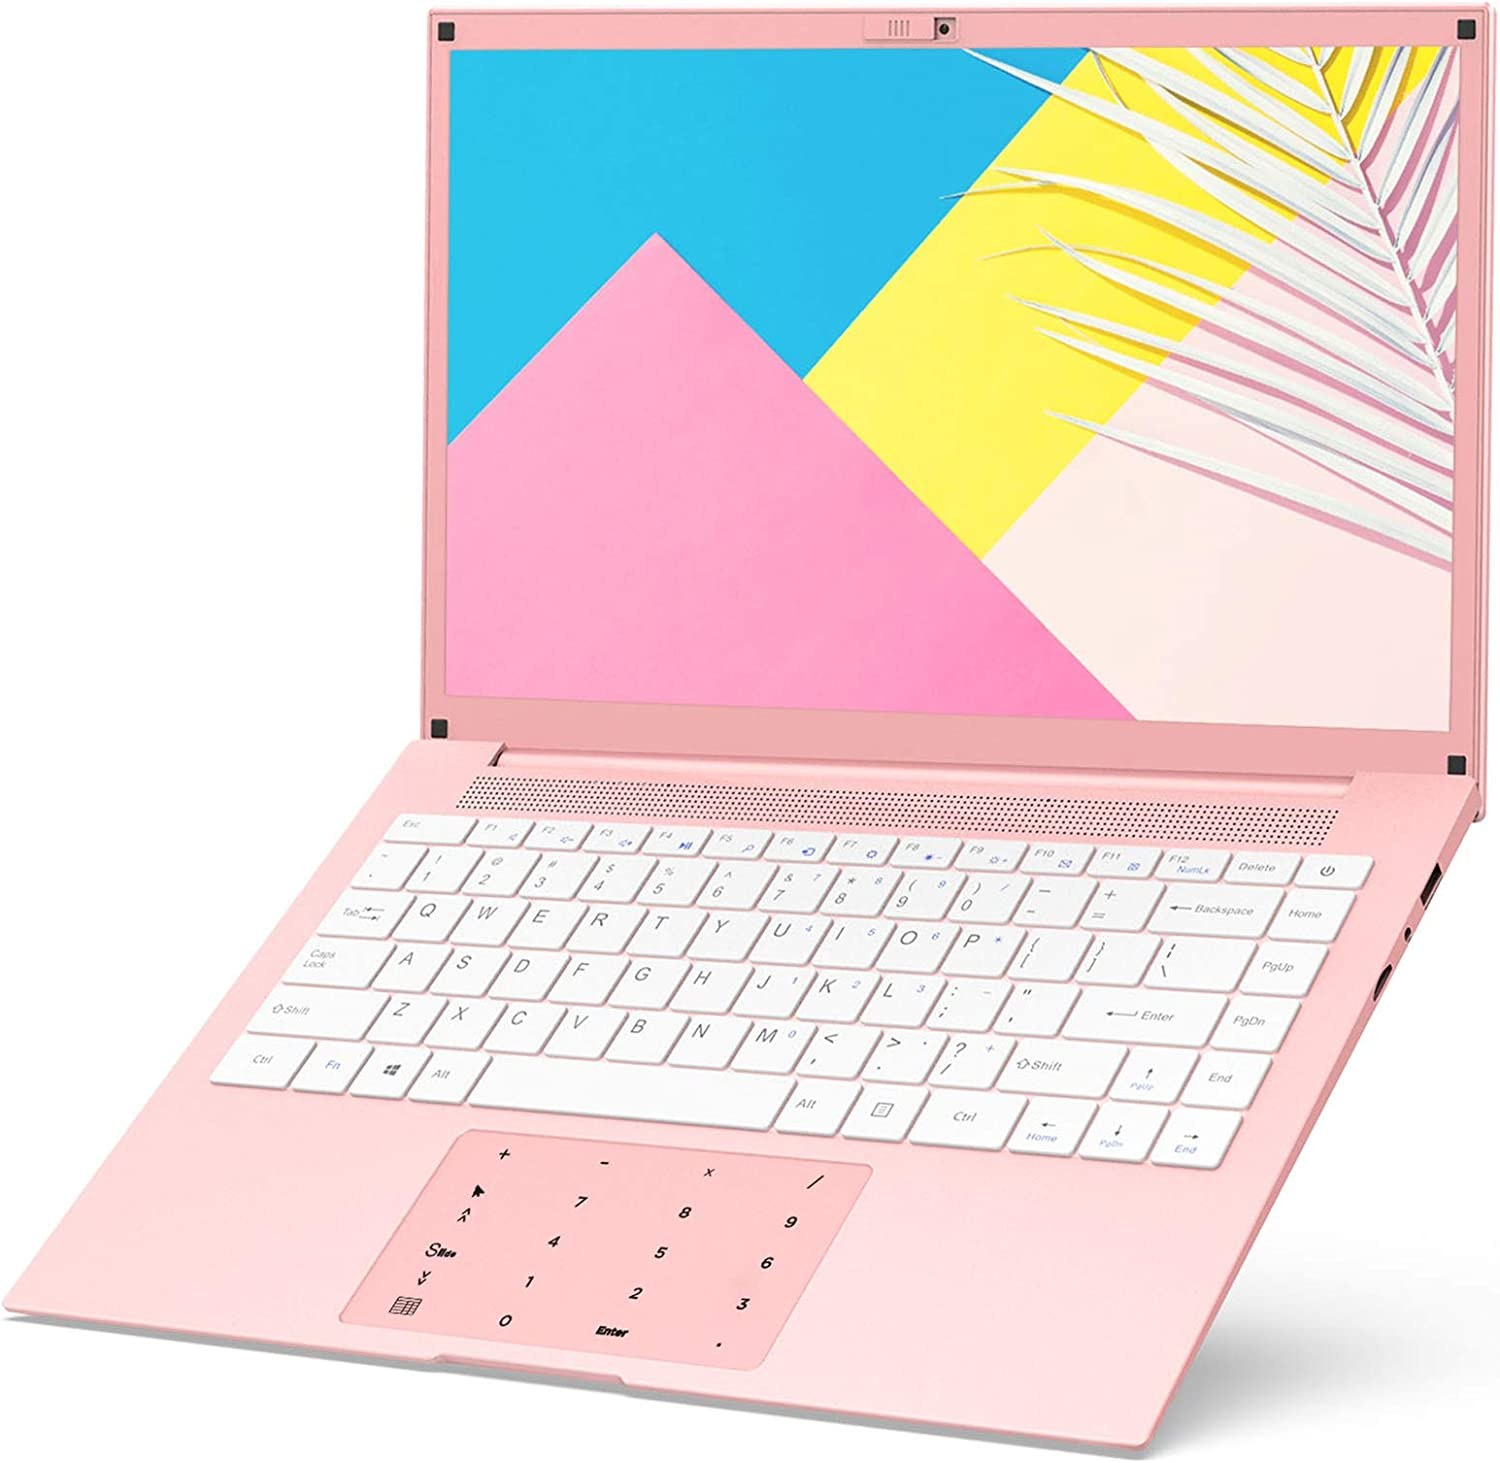 Laptop Computer 14 Inch Windows 10-HAOQIN HaoBook140 Intel Celeron J3455 6GB RAM 128GB SSD HD IPS 1366×768 Display Thin and Light Notebook PC WiFi Bluetooth 4.2 HDMI Pink